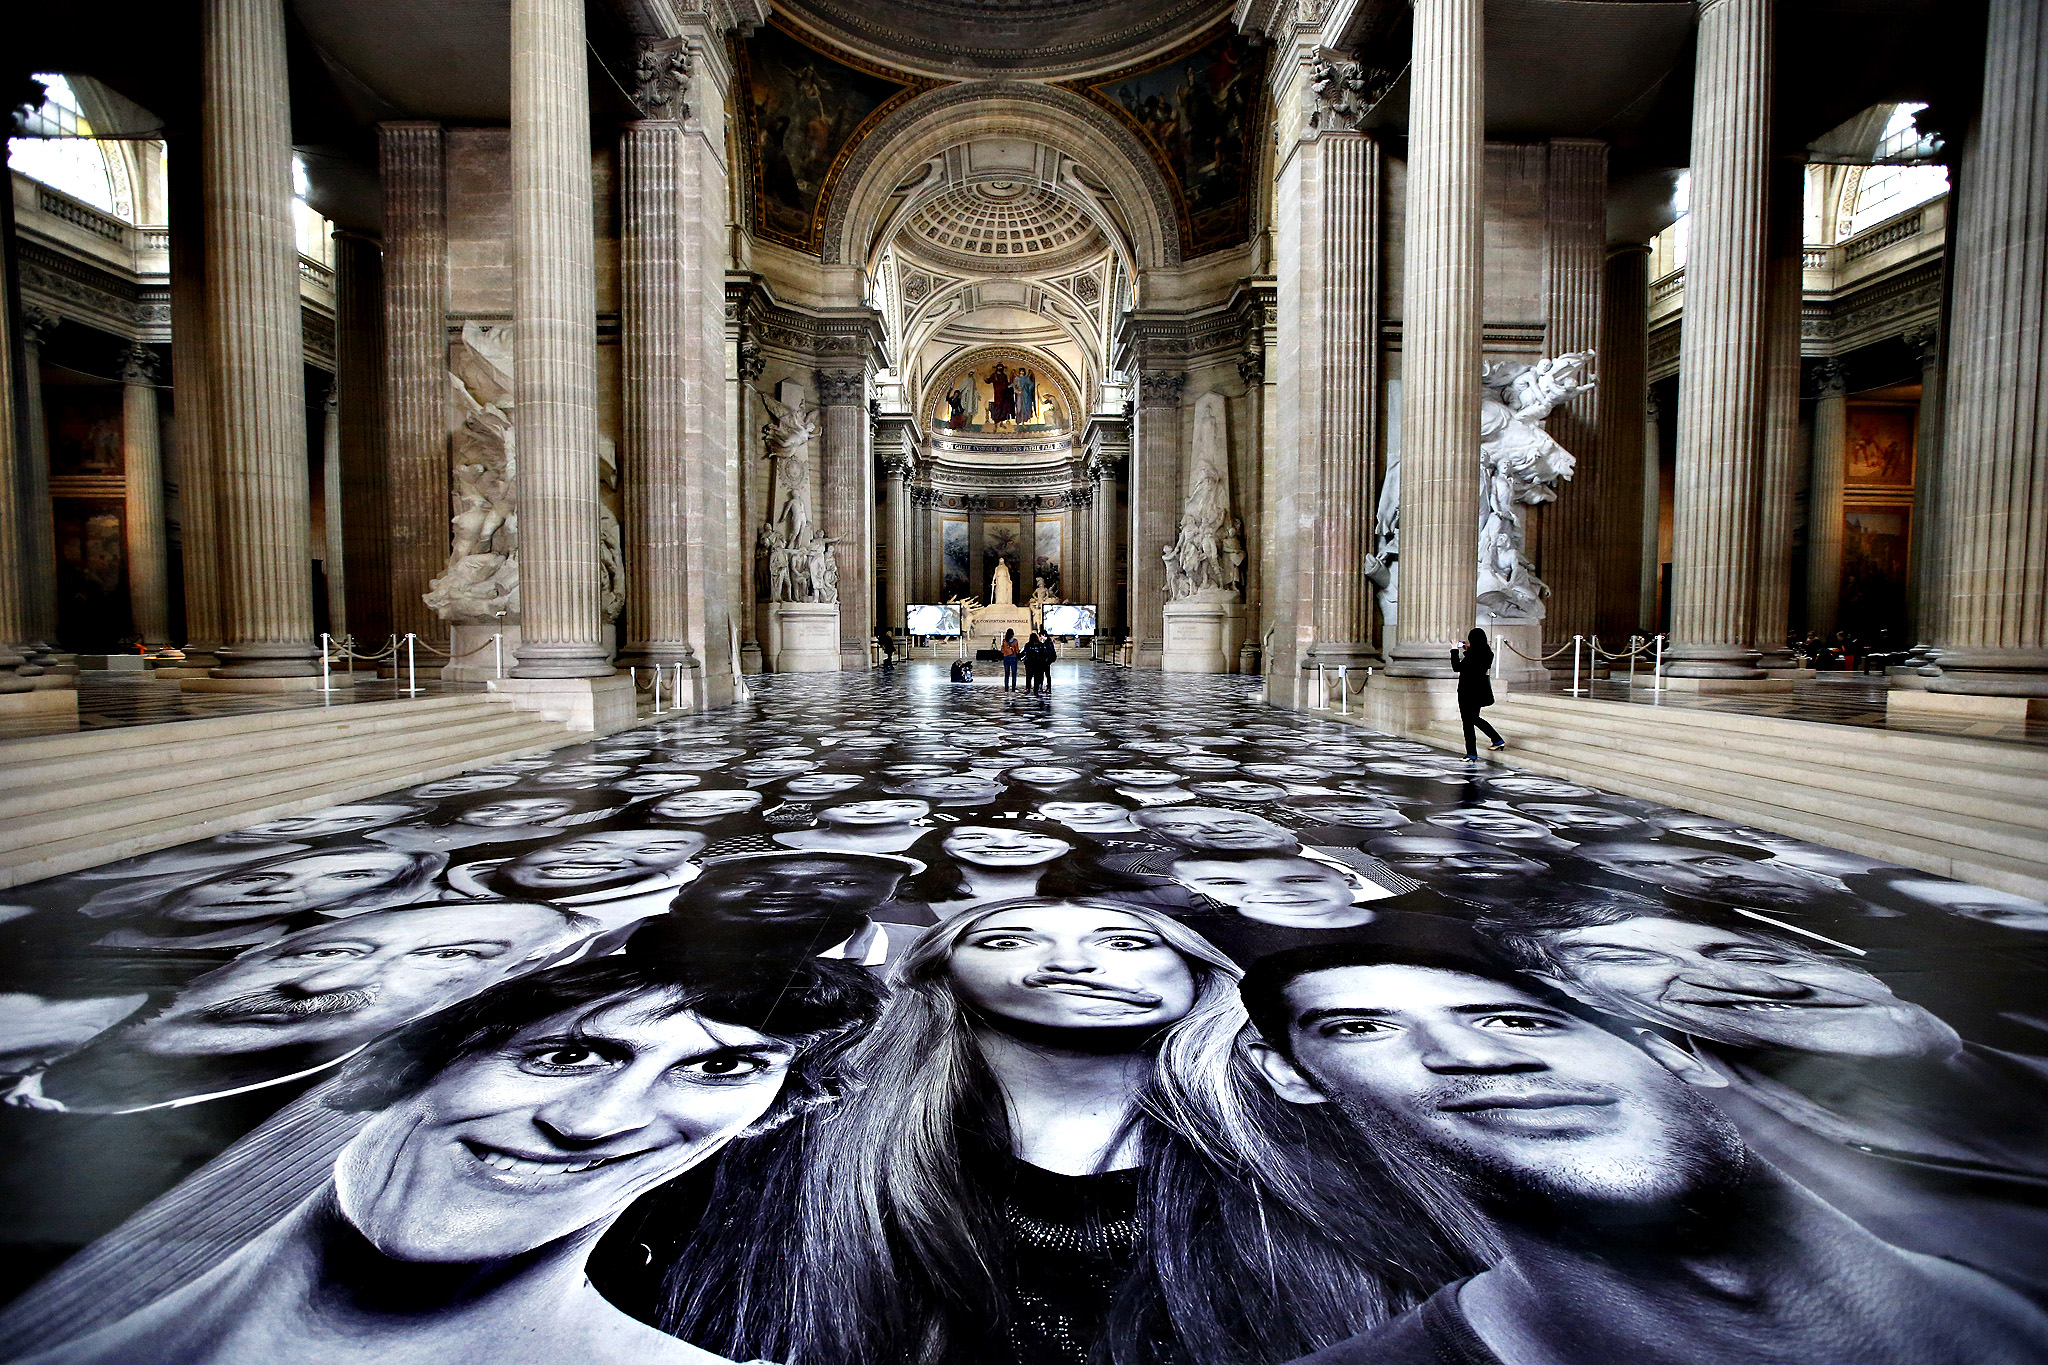 Giant portraits by French street artist and photographer JR are pictured during the presentation of his creation at the Pantheon in Paris, Tuesday, June 3, 2014. French Government named JR to decorate with portraits the dome of Paris' Pantheon, that is the final resting place for 72 of France's renowned men, and just one woman, as the monument is undergoing a 2 year renovation.